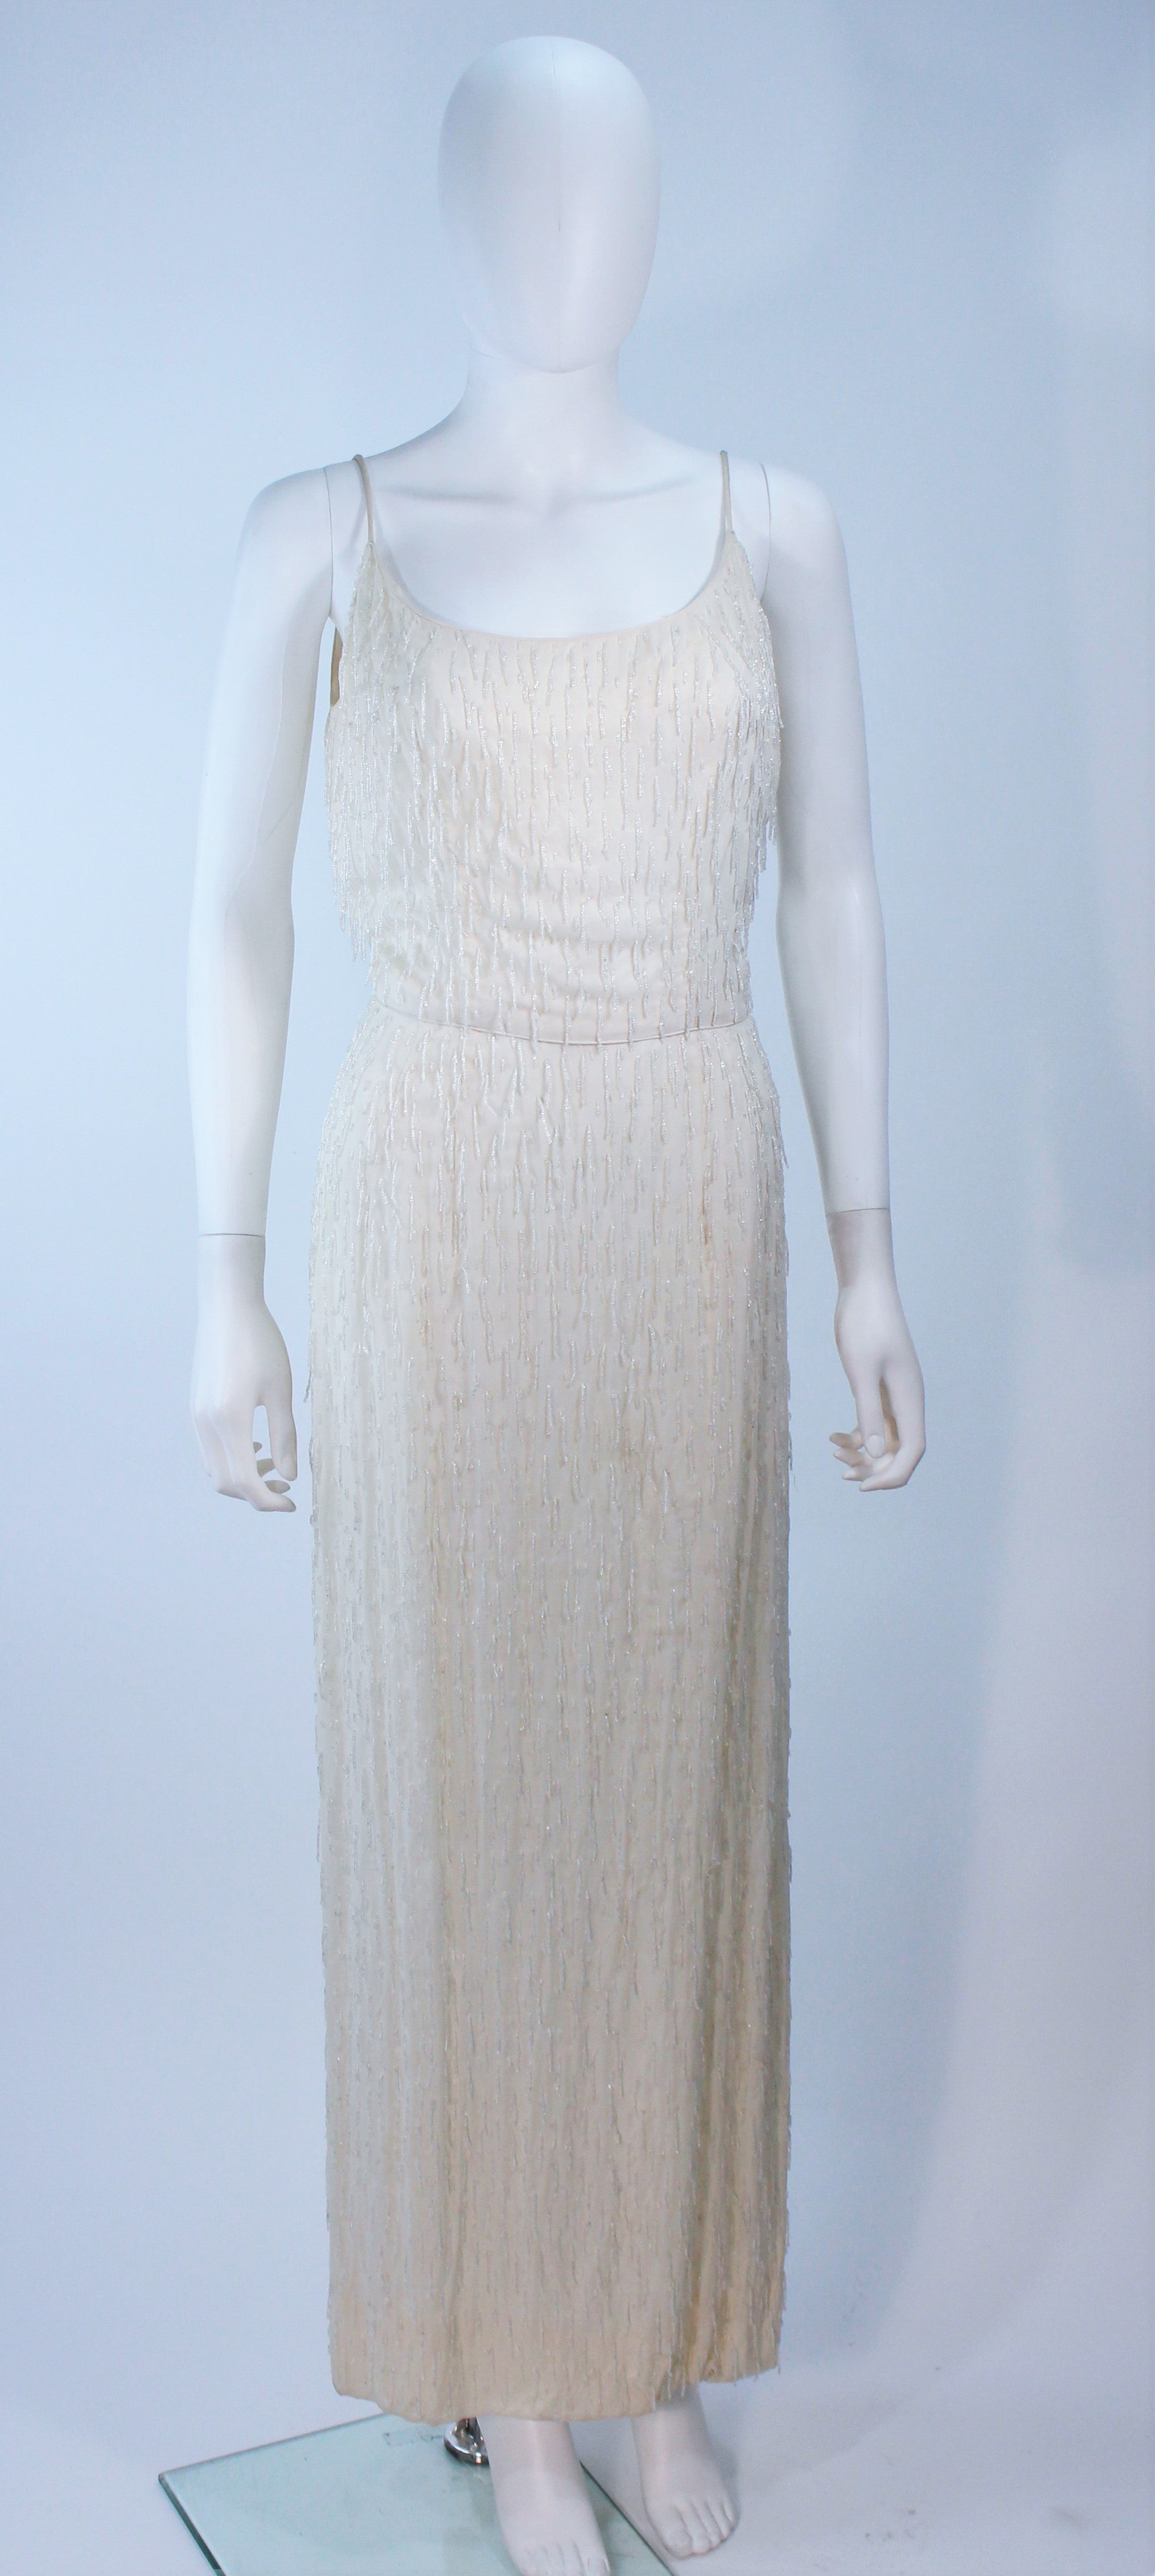 de324f0f376 White Vintage Beaded Fringe Gown with Bolero Size 10 For Sale at 1stdibs